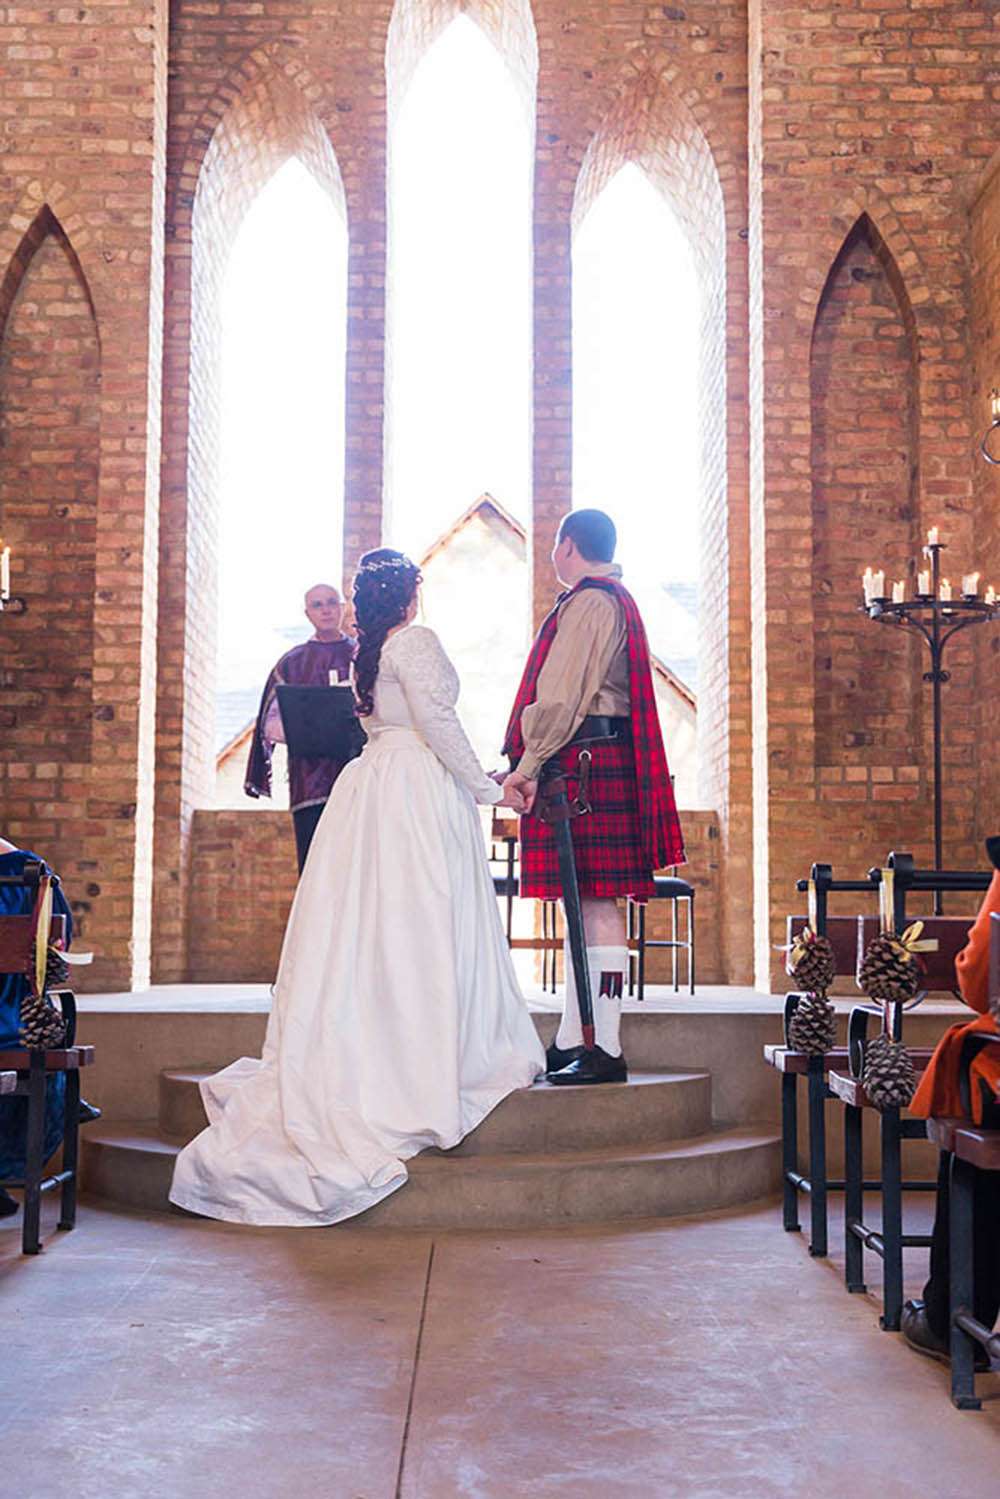 medieval-themed-wedding-medieval-wedding-dgr-photography-castle-wedding-63